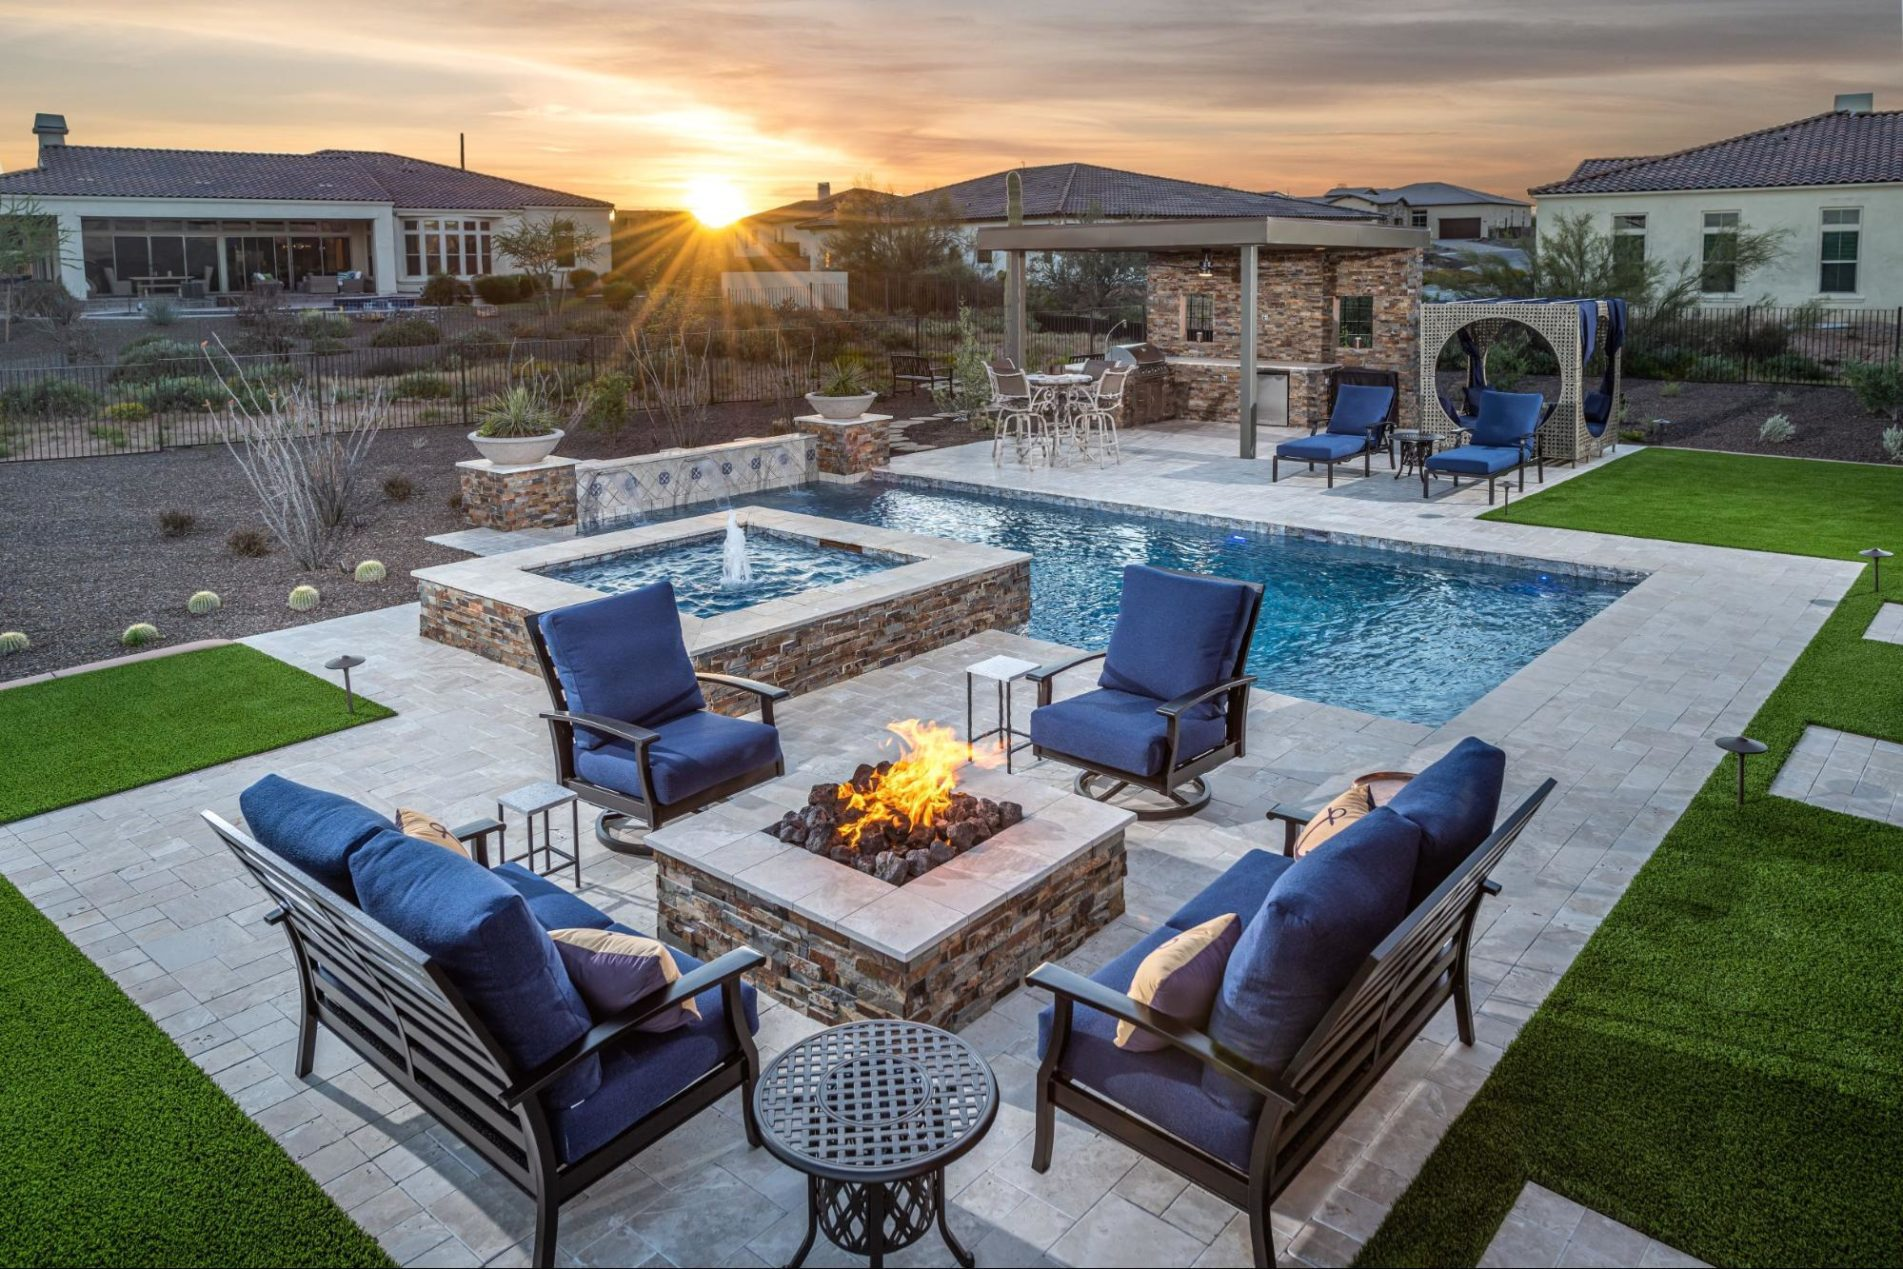 Photo Credit California Pools & Landscape